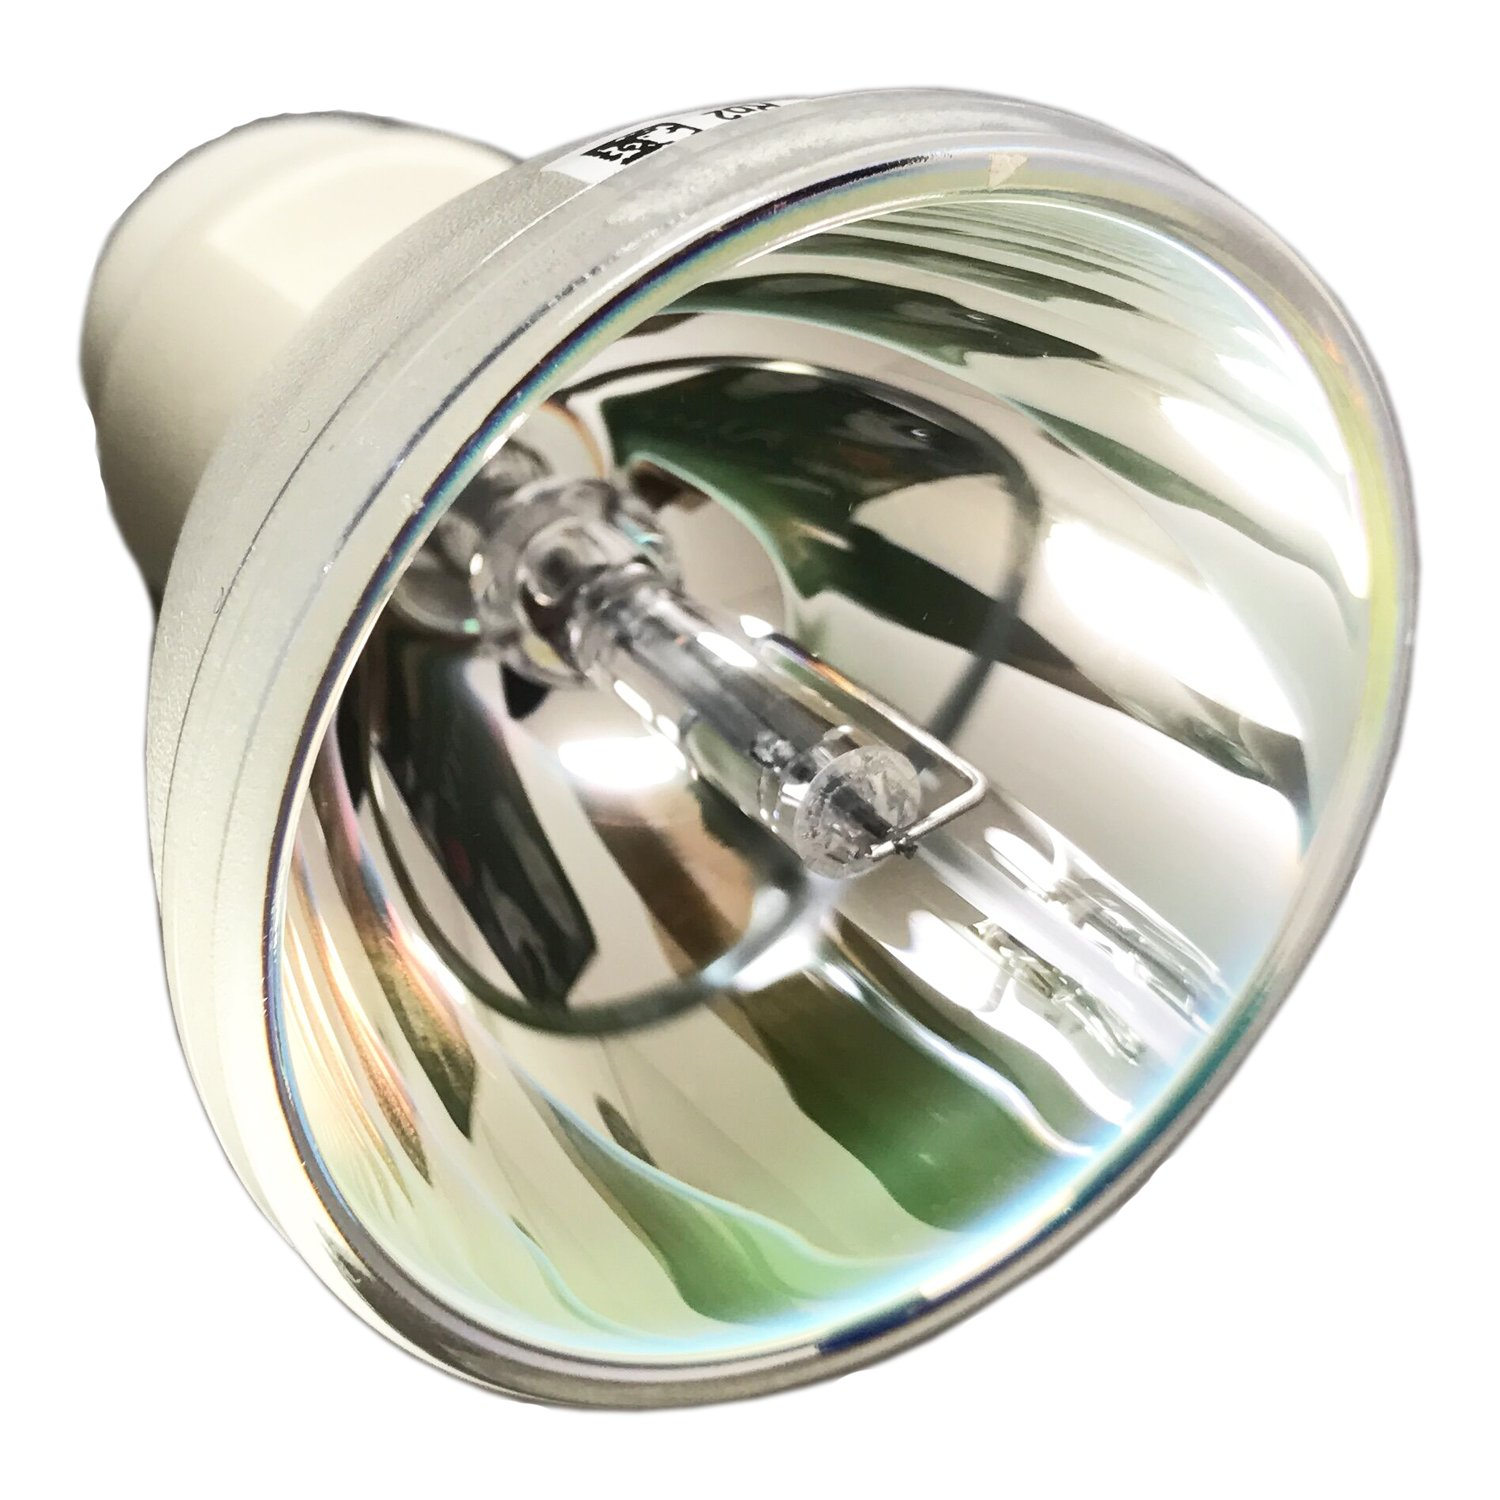 Litance Projector Bare Bulb Replacement for BenQ 5J.JEL05.001, TH670 by Litance (Image #4)